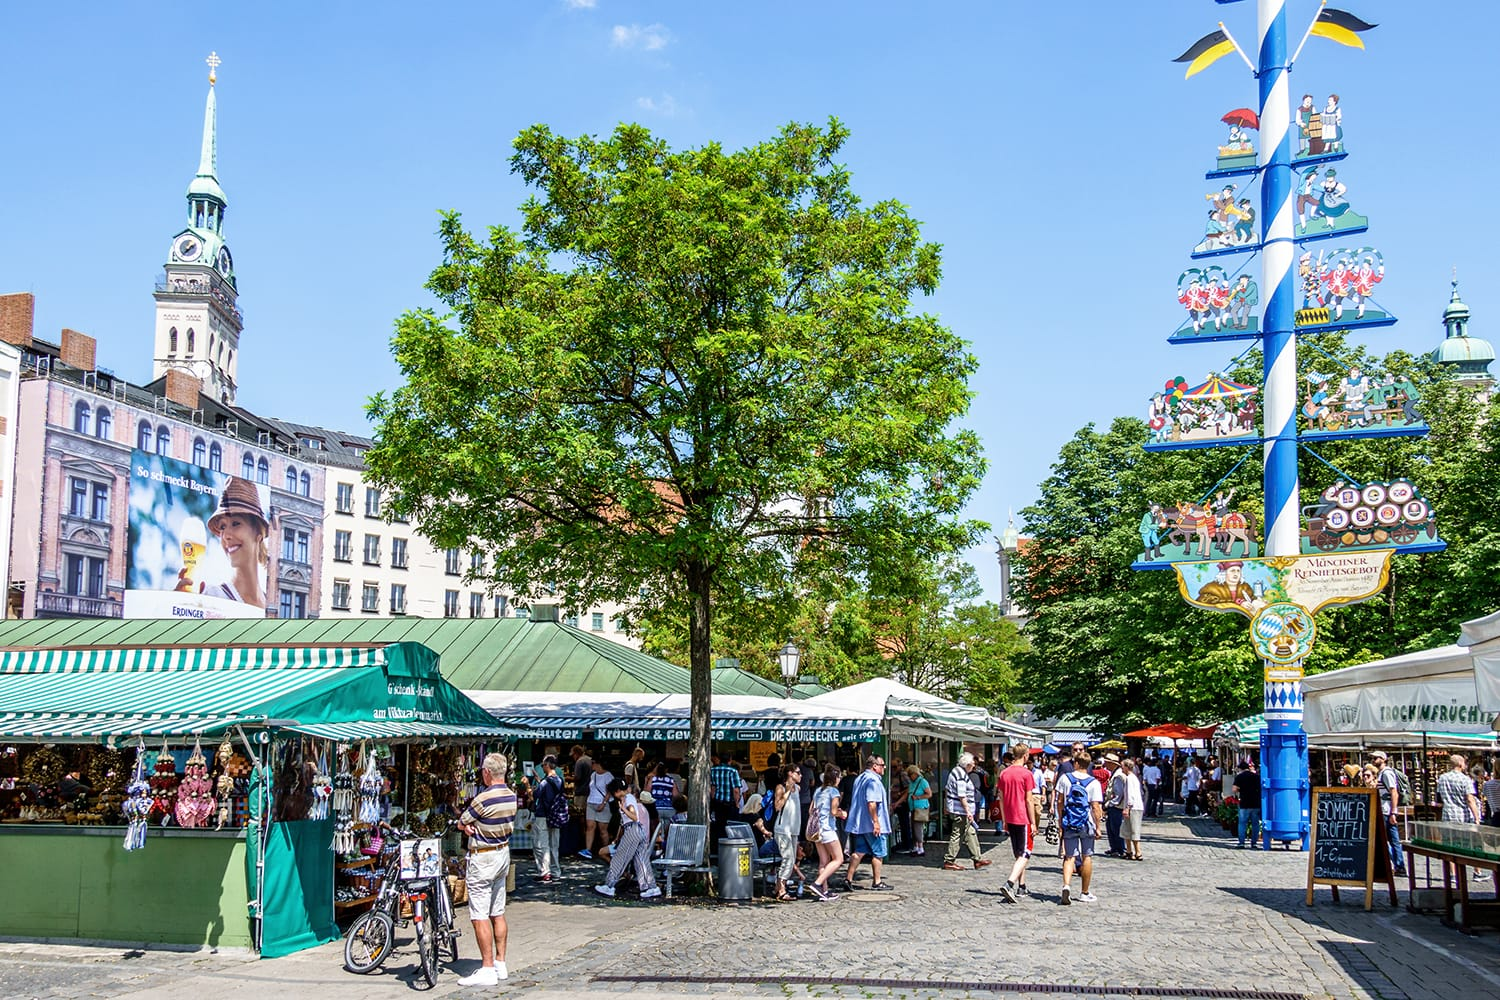 View of Viktualienmarkt a sunny day. It is a daily food market and a square in the center of Munich near Marienplatz